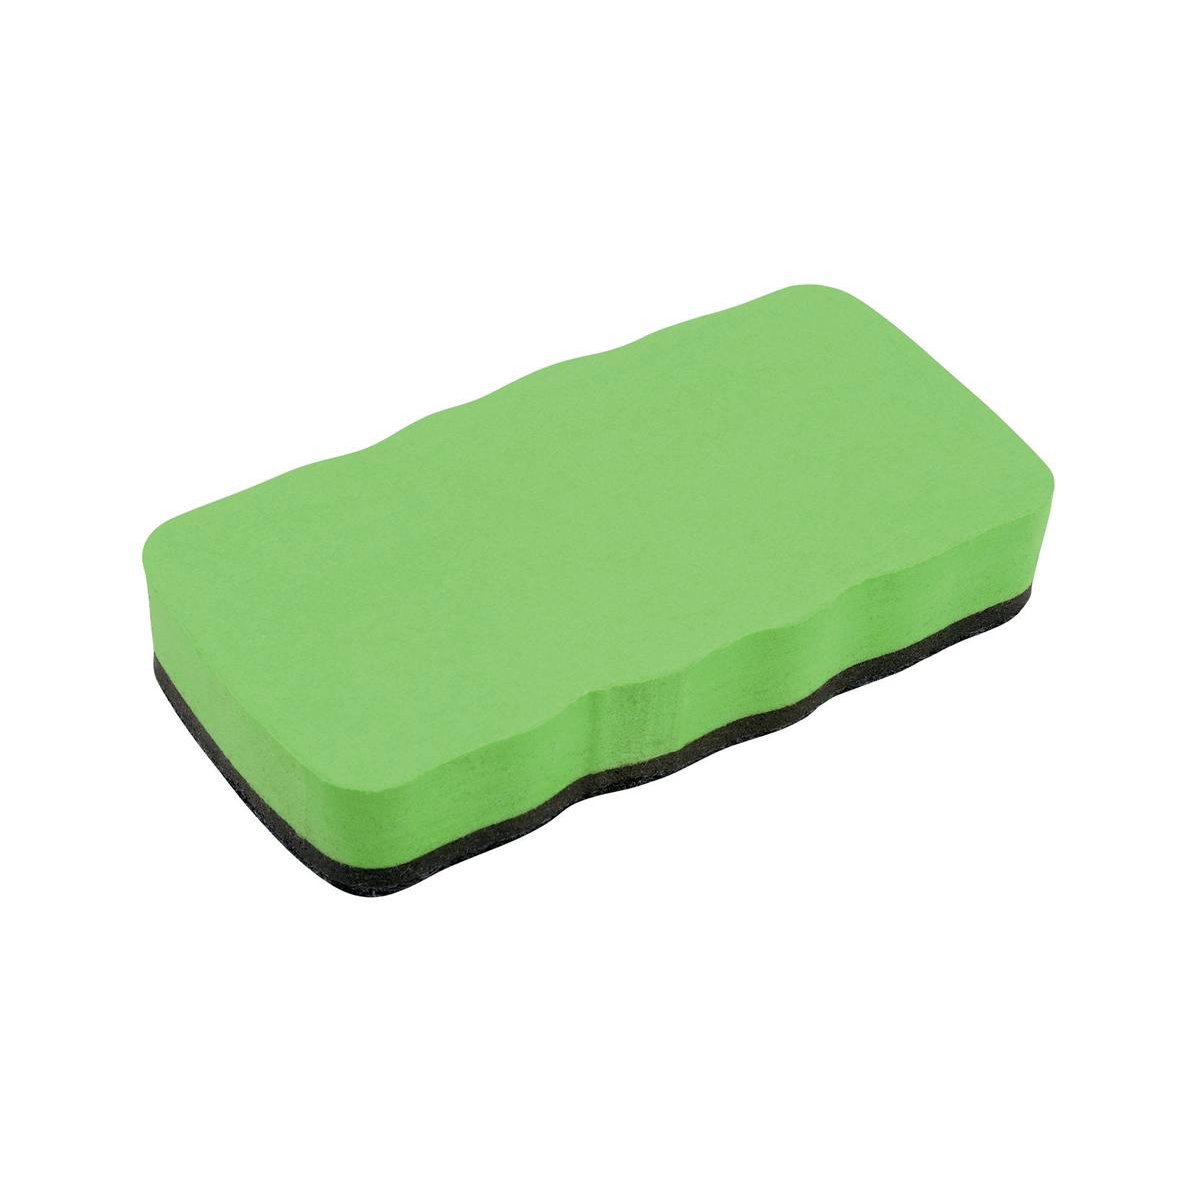 Cleaning / Erasing 5 Star Elite Drywipe Eraser Magnetic Lime Green